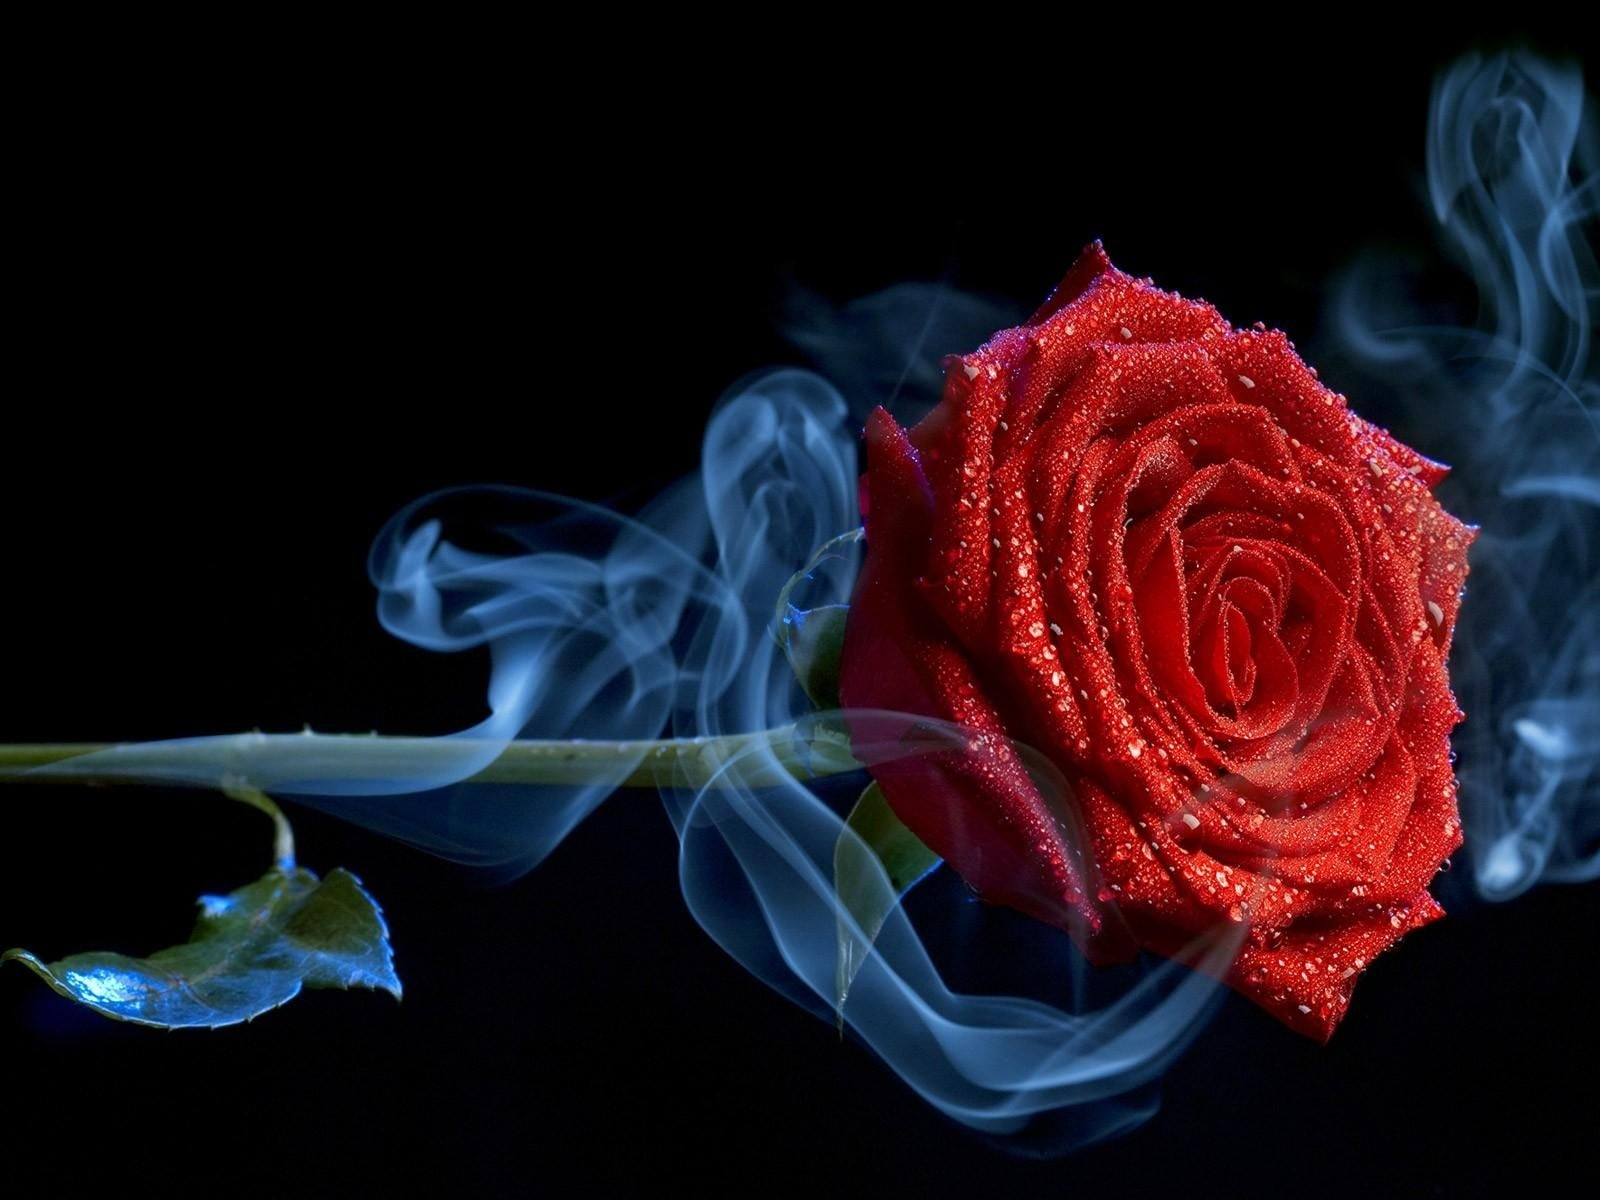 rose in a plume of smoke